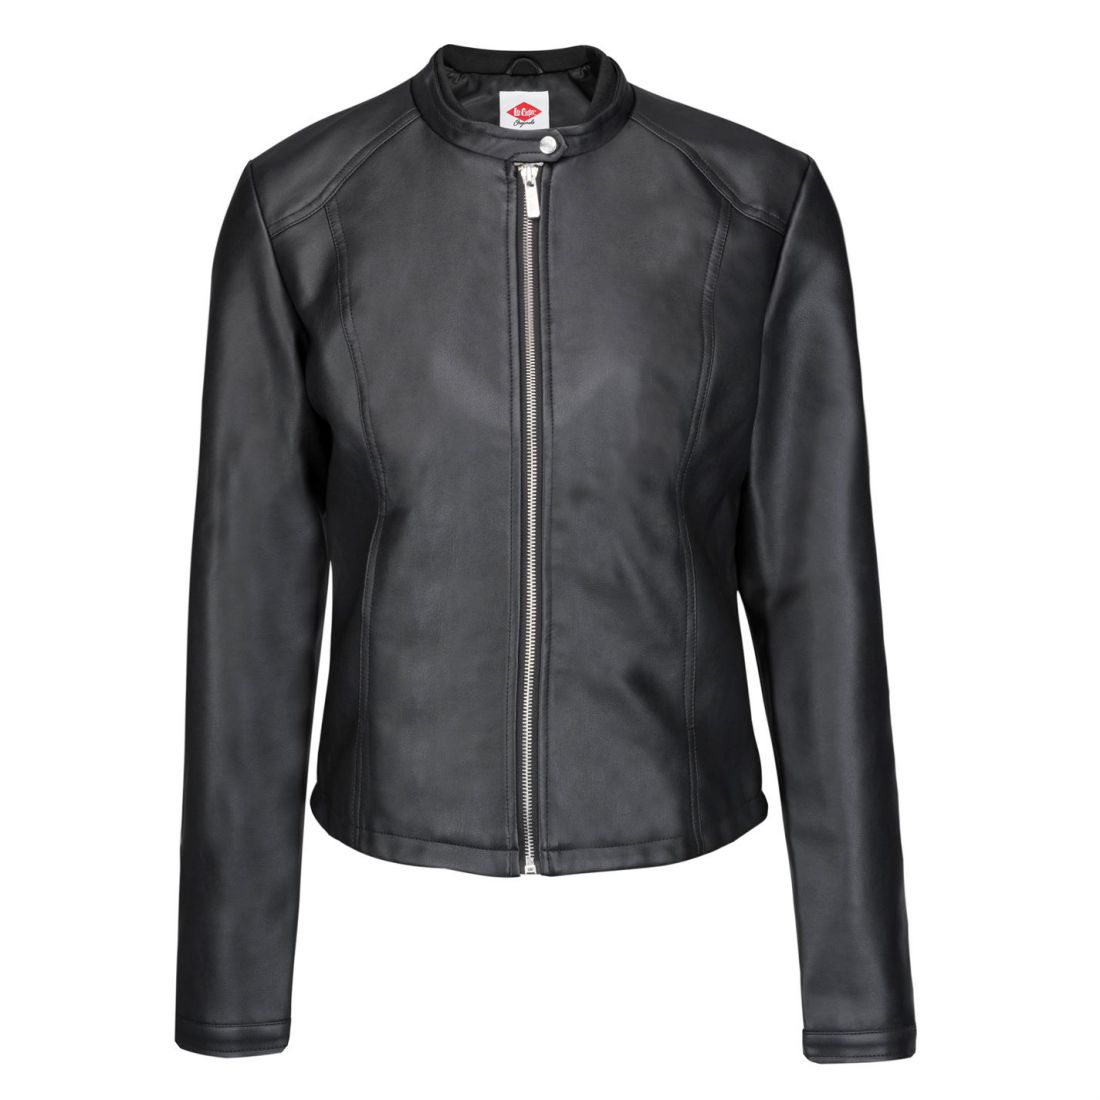 29a219eef Details about Lee Cooper Classic PU Jacket Ladies Leather Coat Top